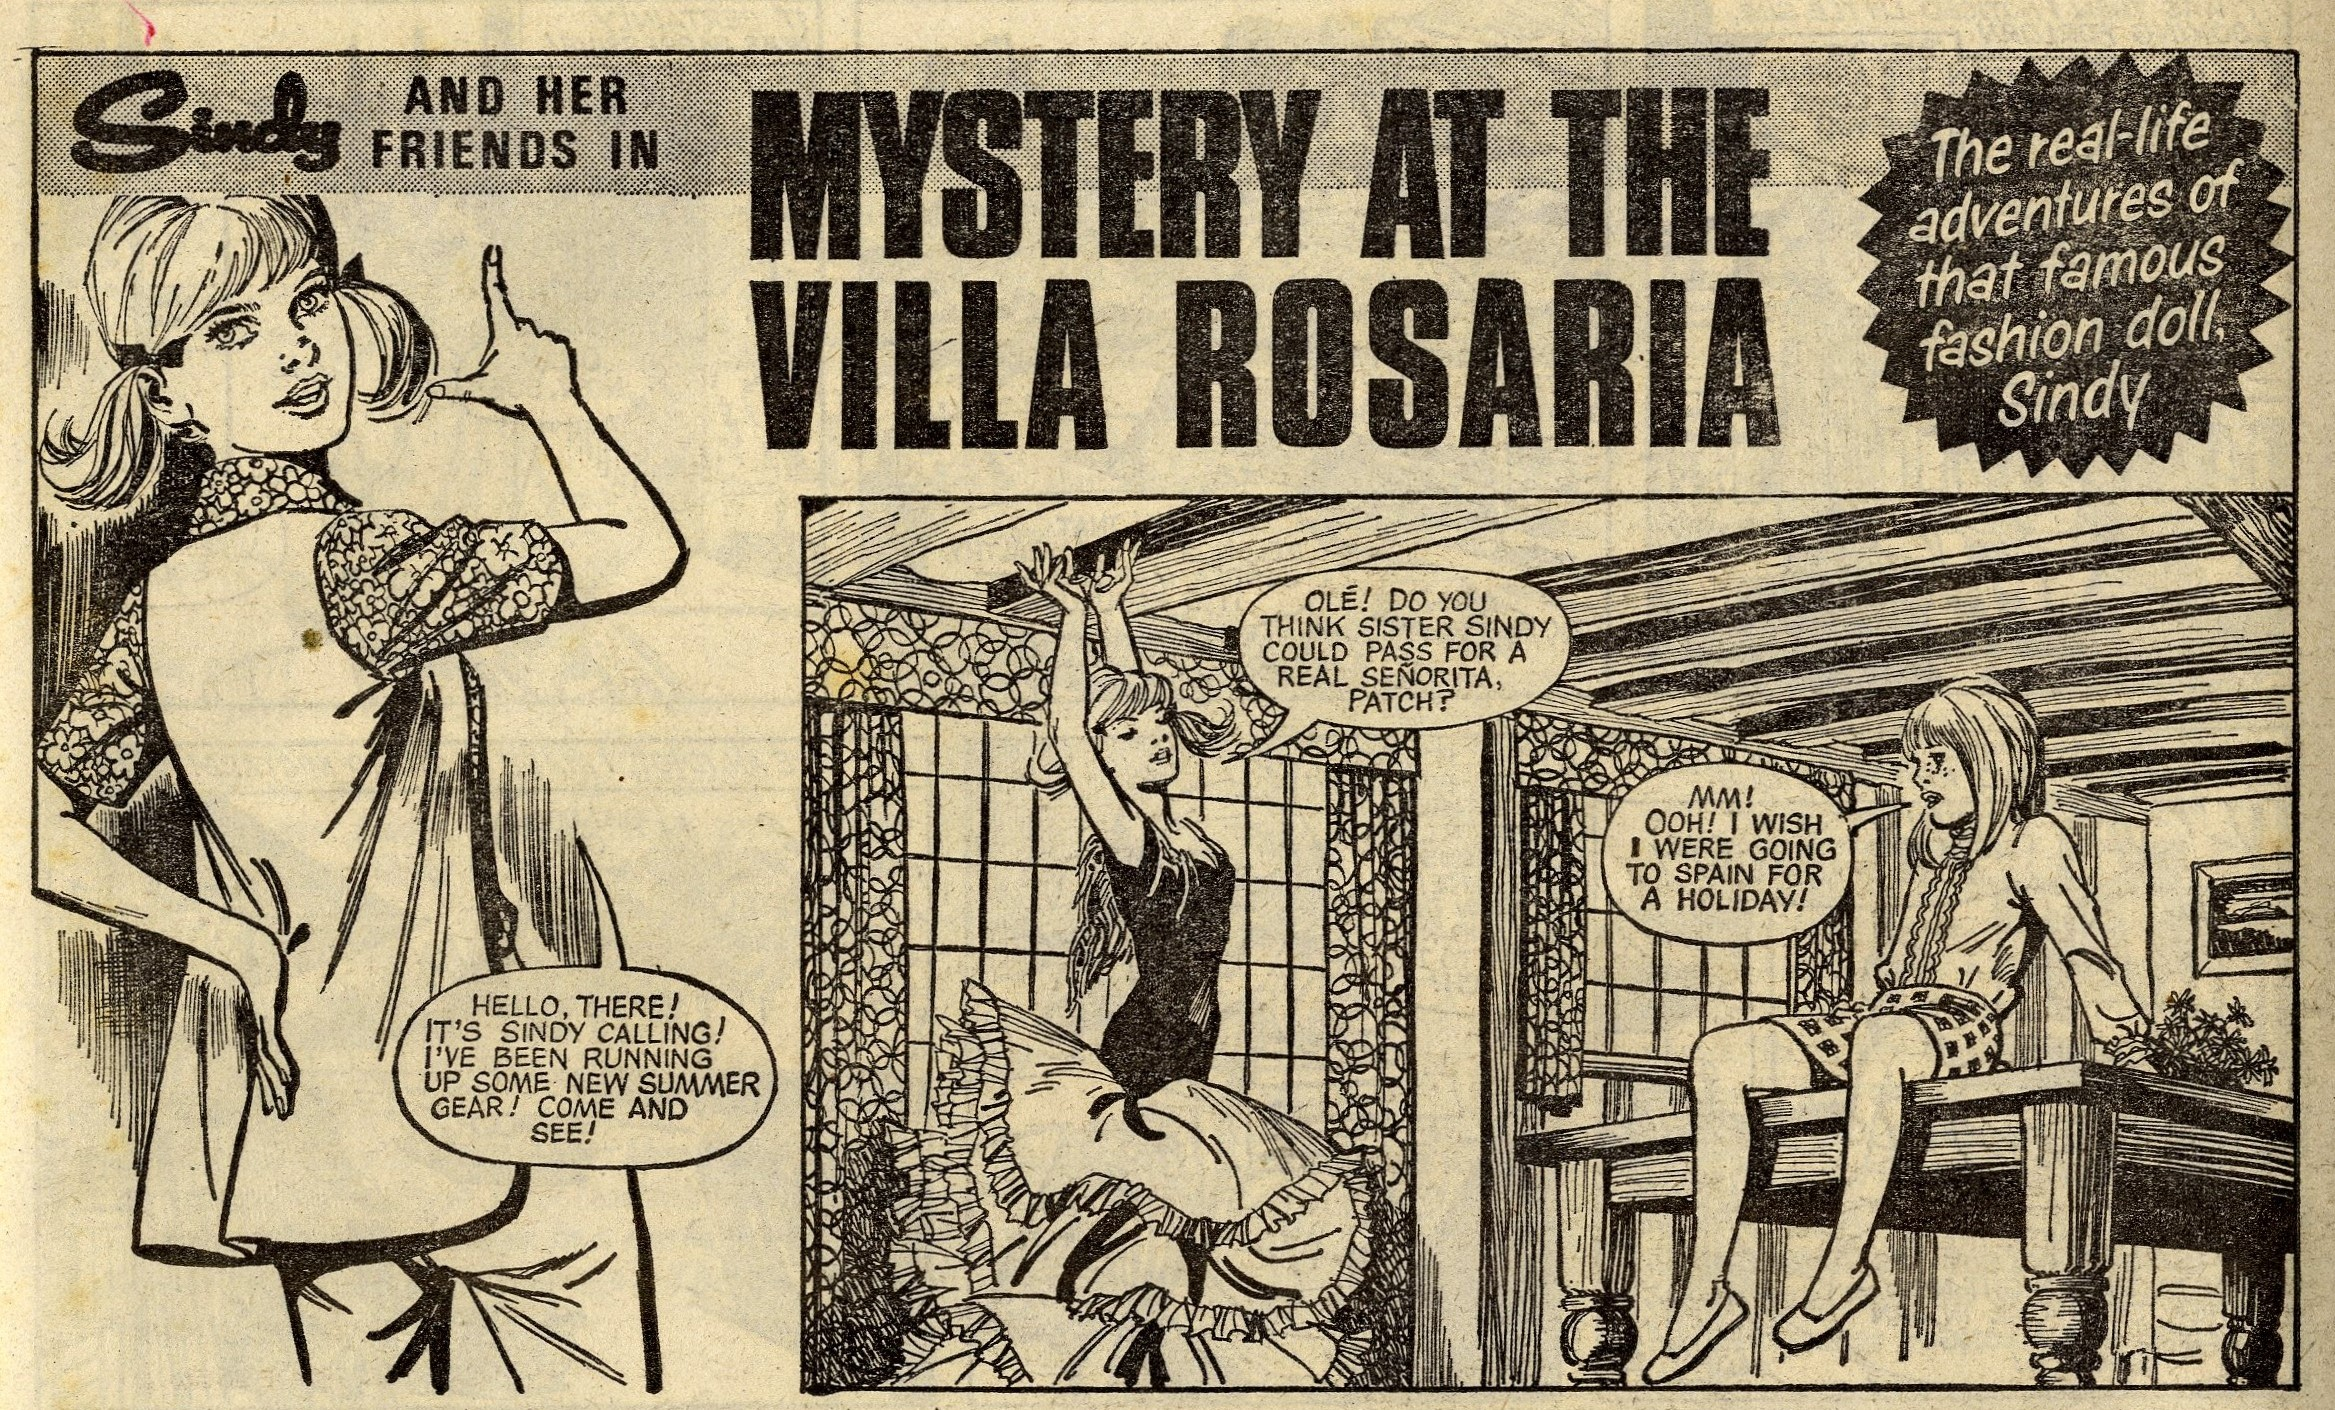 Sindy and her Friends in Mystery at the Villa Rosaria: Phil Townsend (artist)